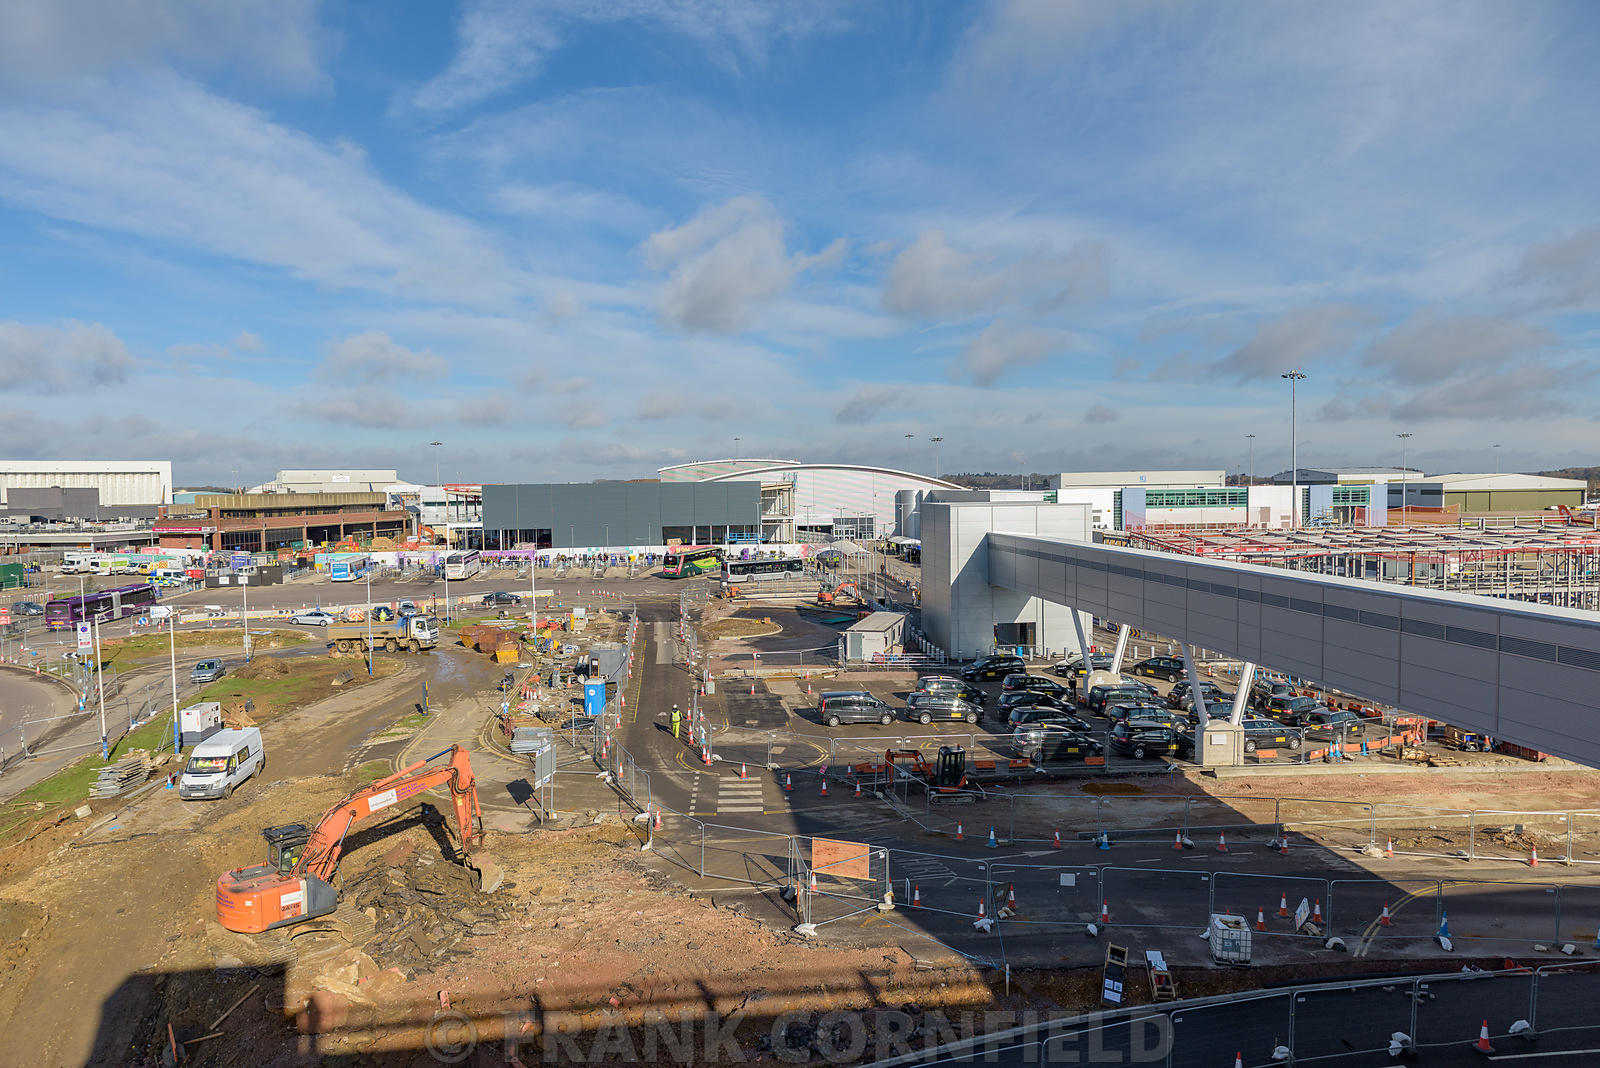 LUTON, ENGLAND - FEBRUARY 28, 2017: Major work at a construction site close to runway and taxi areas at Luton airport.